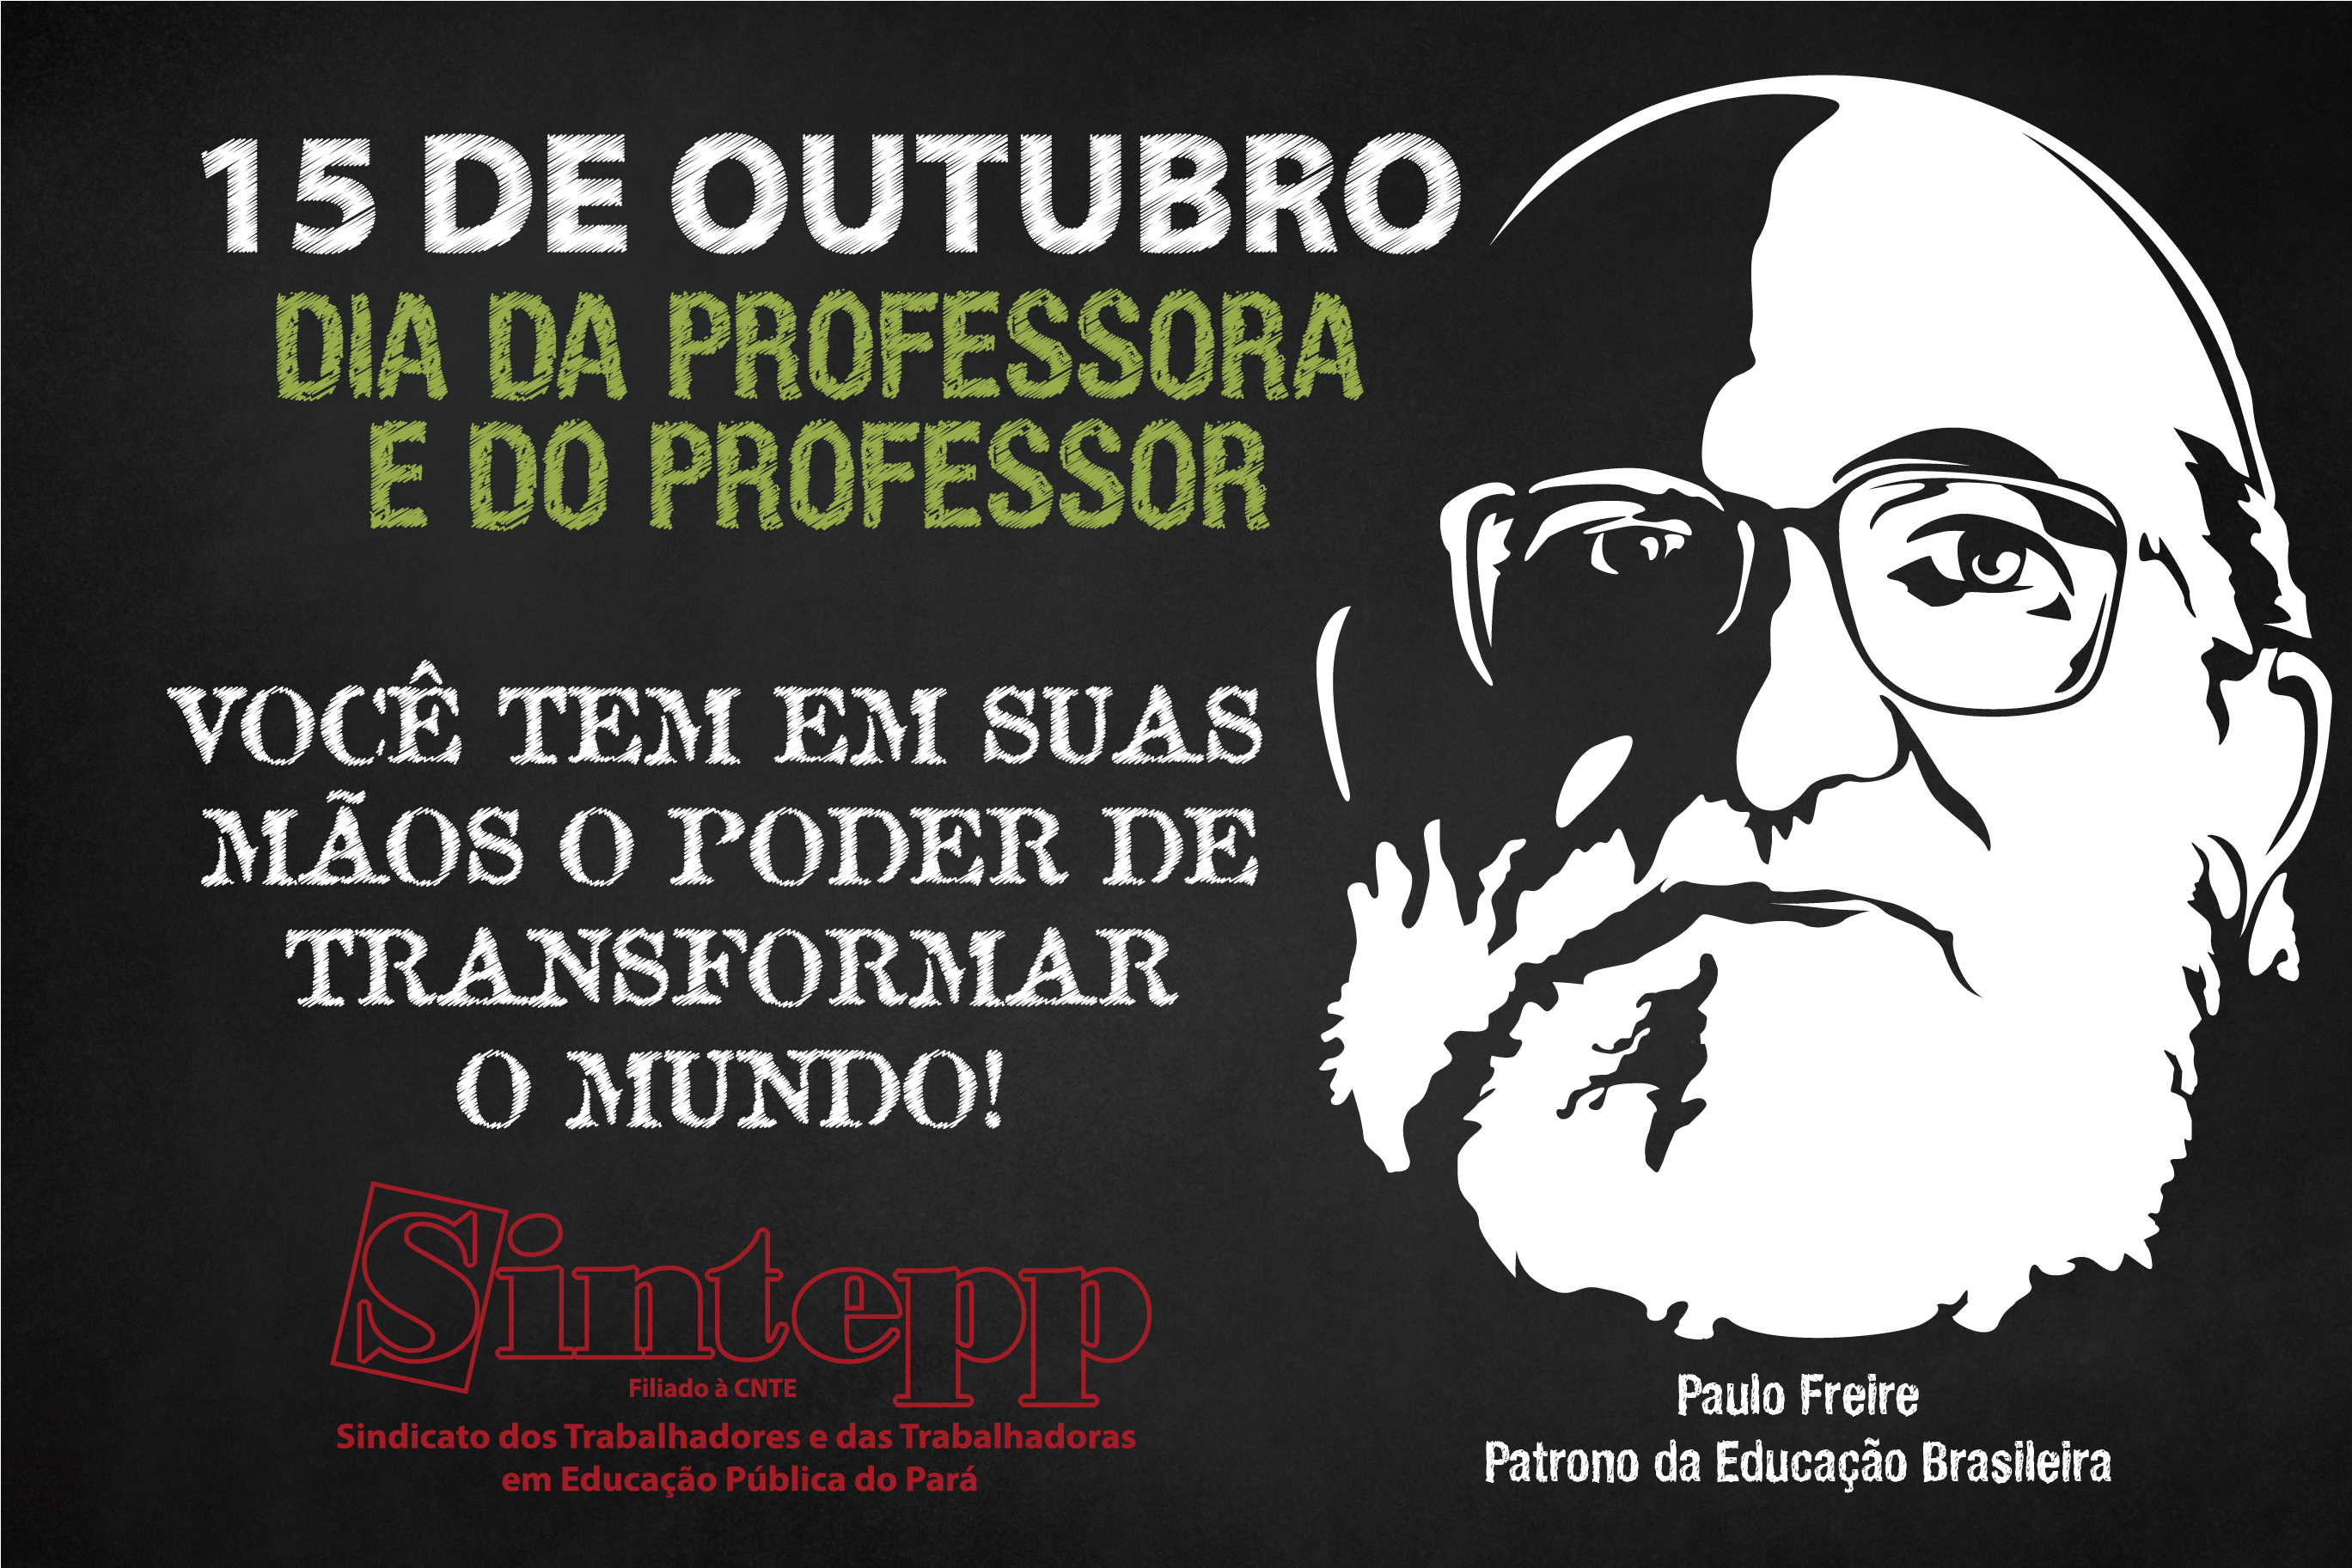 15 de outubro: dia da professora e do professor